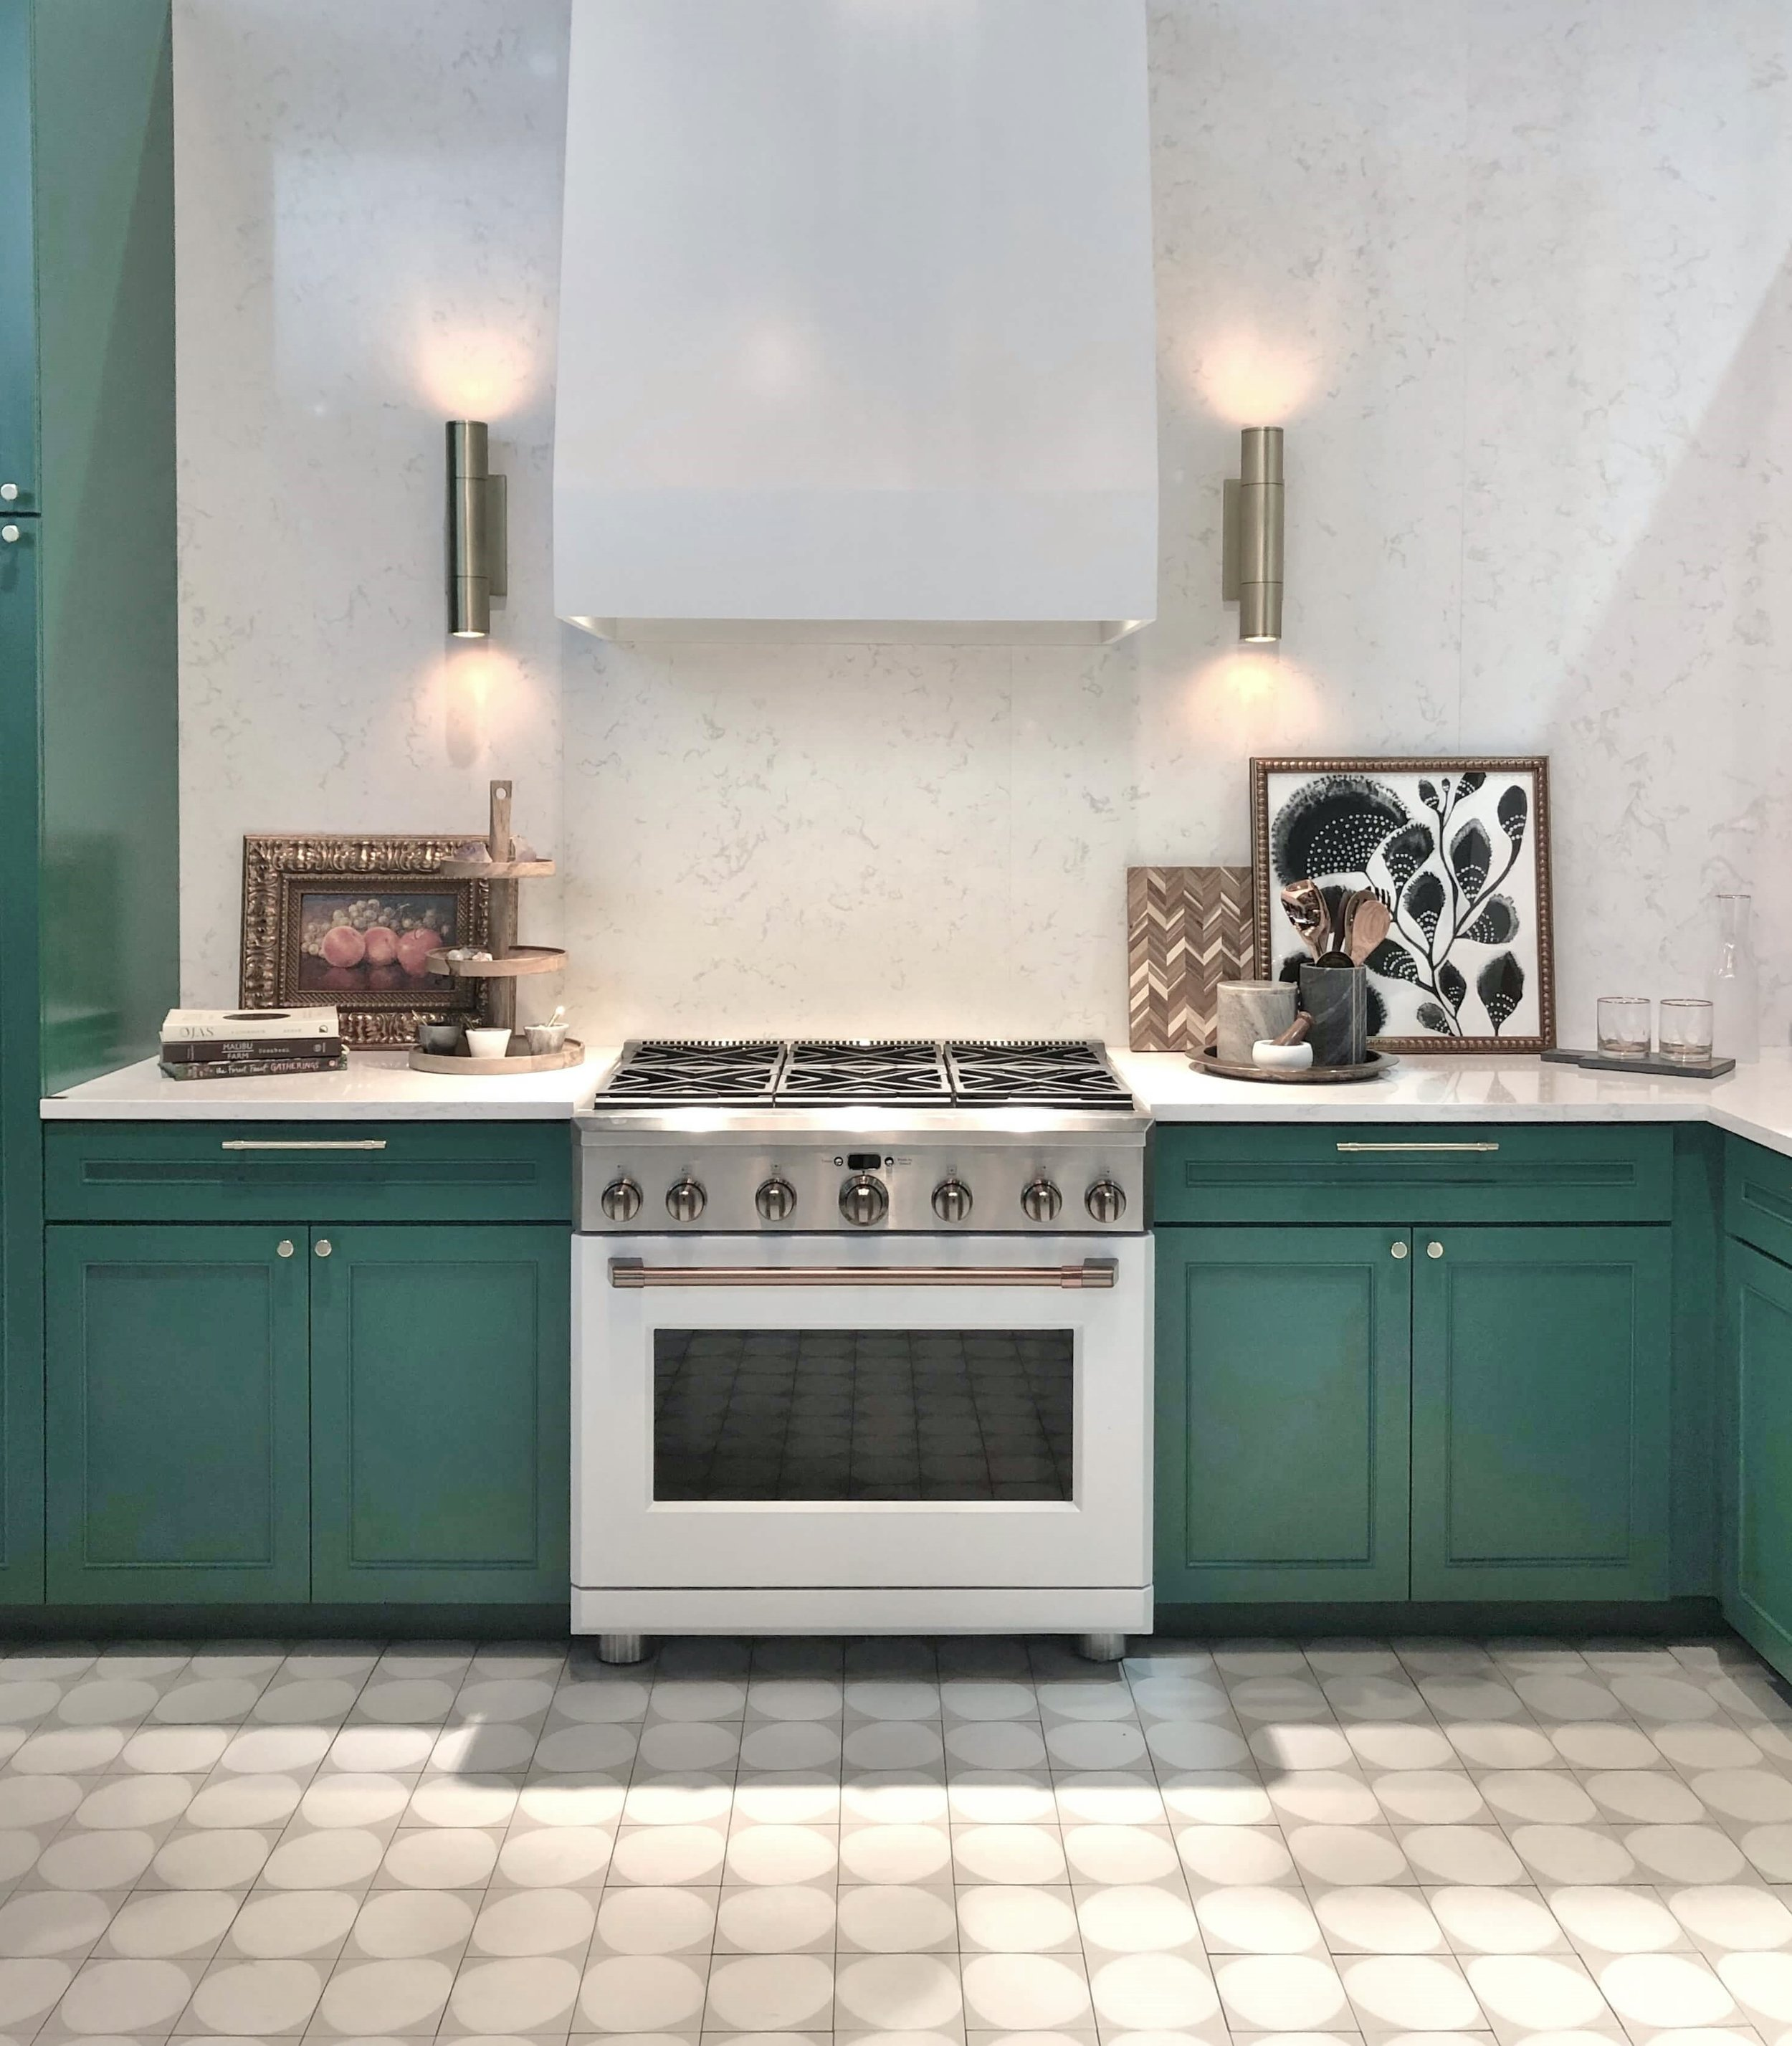 White appliances at GE Cafe | KBIS 2019 Finds